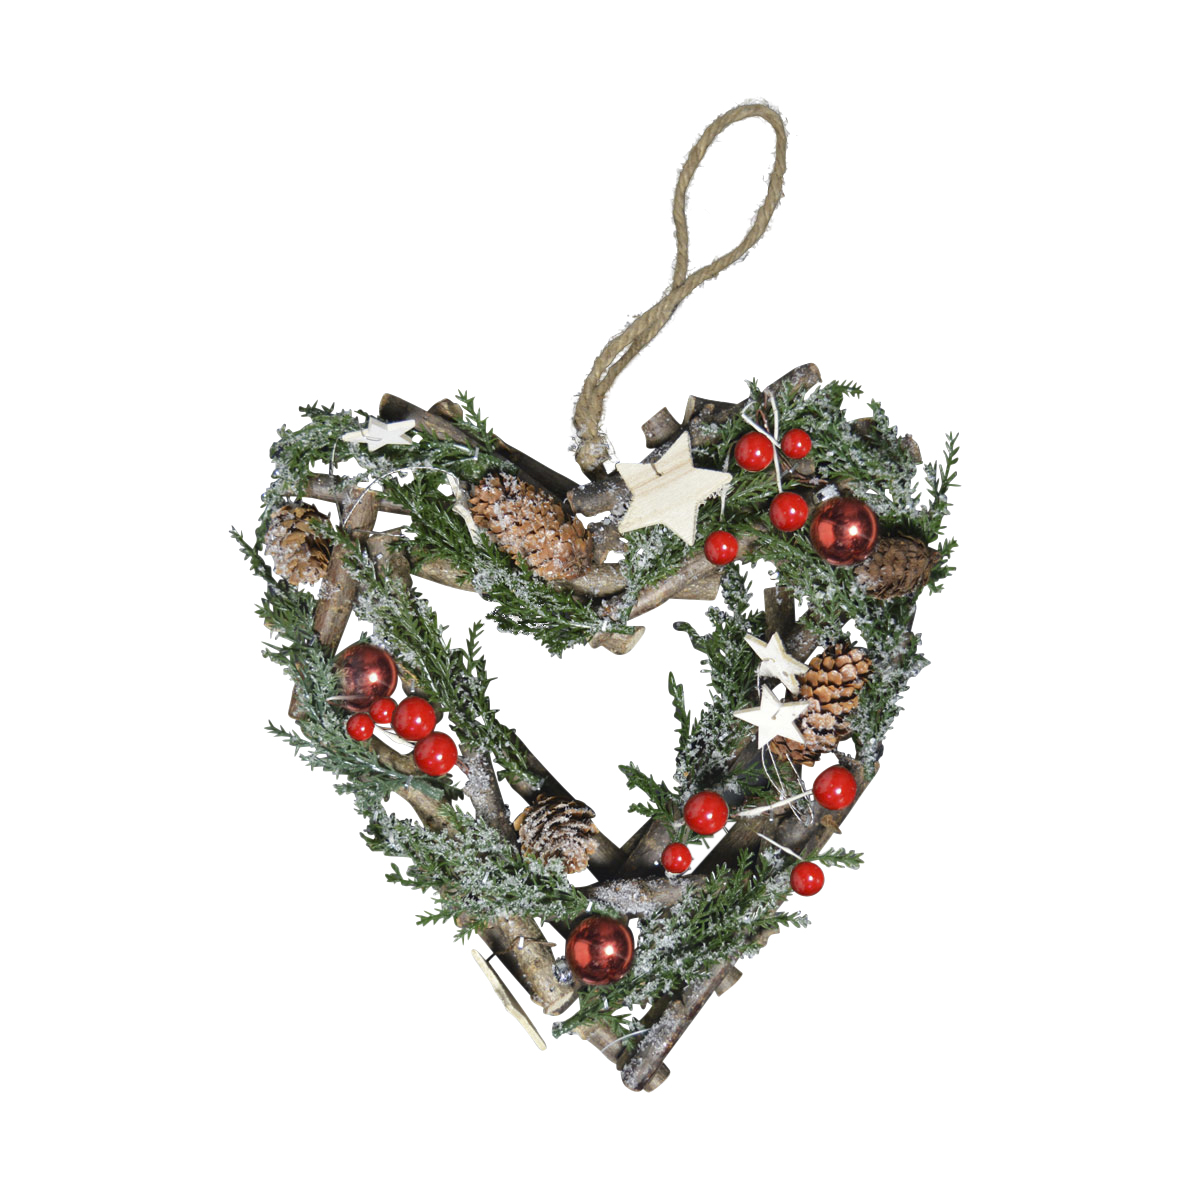 Christmas cm heart shaped wreath traditional